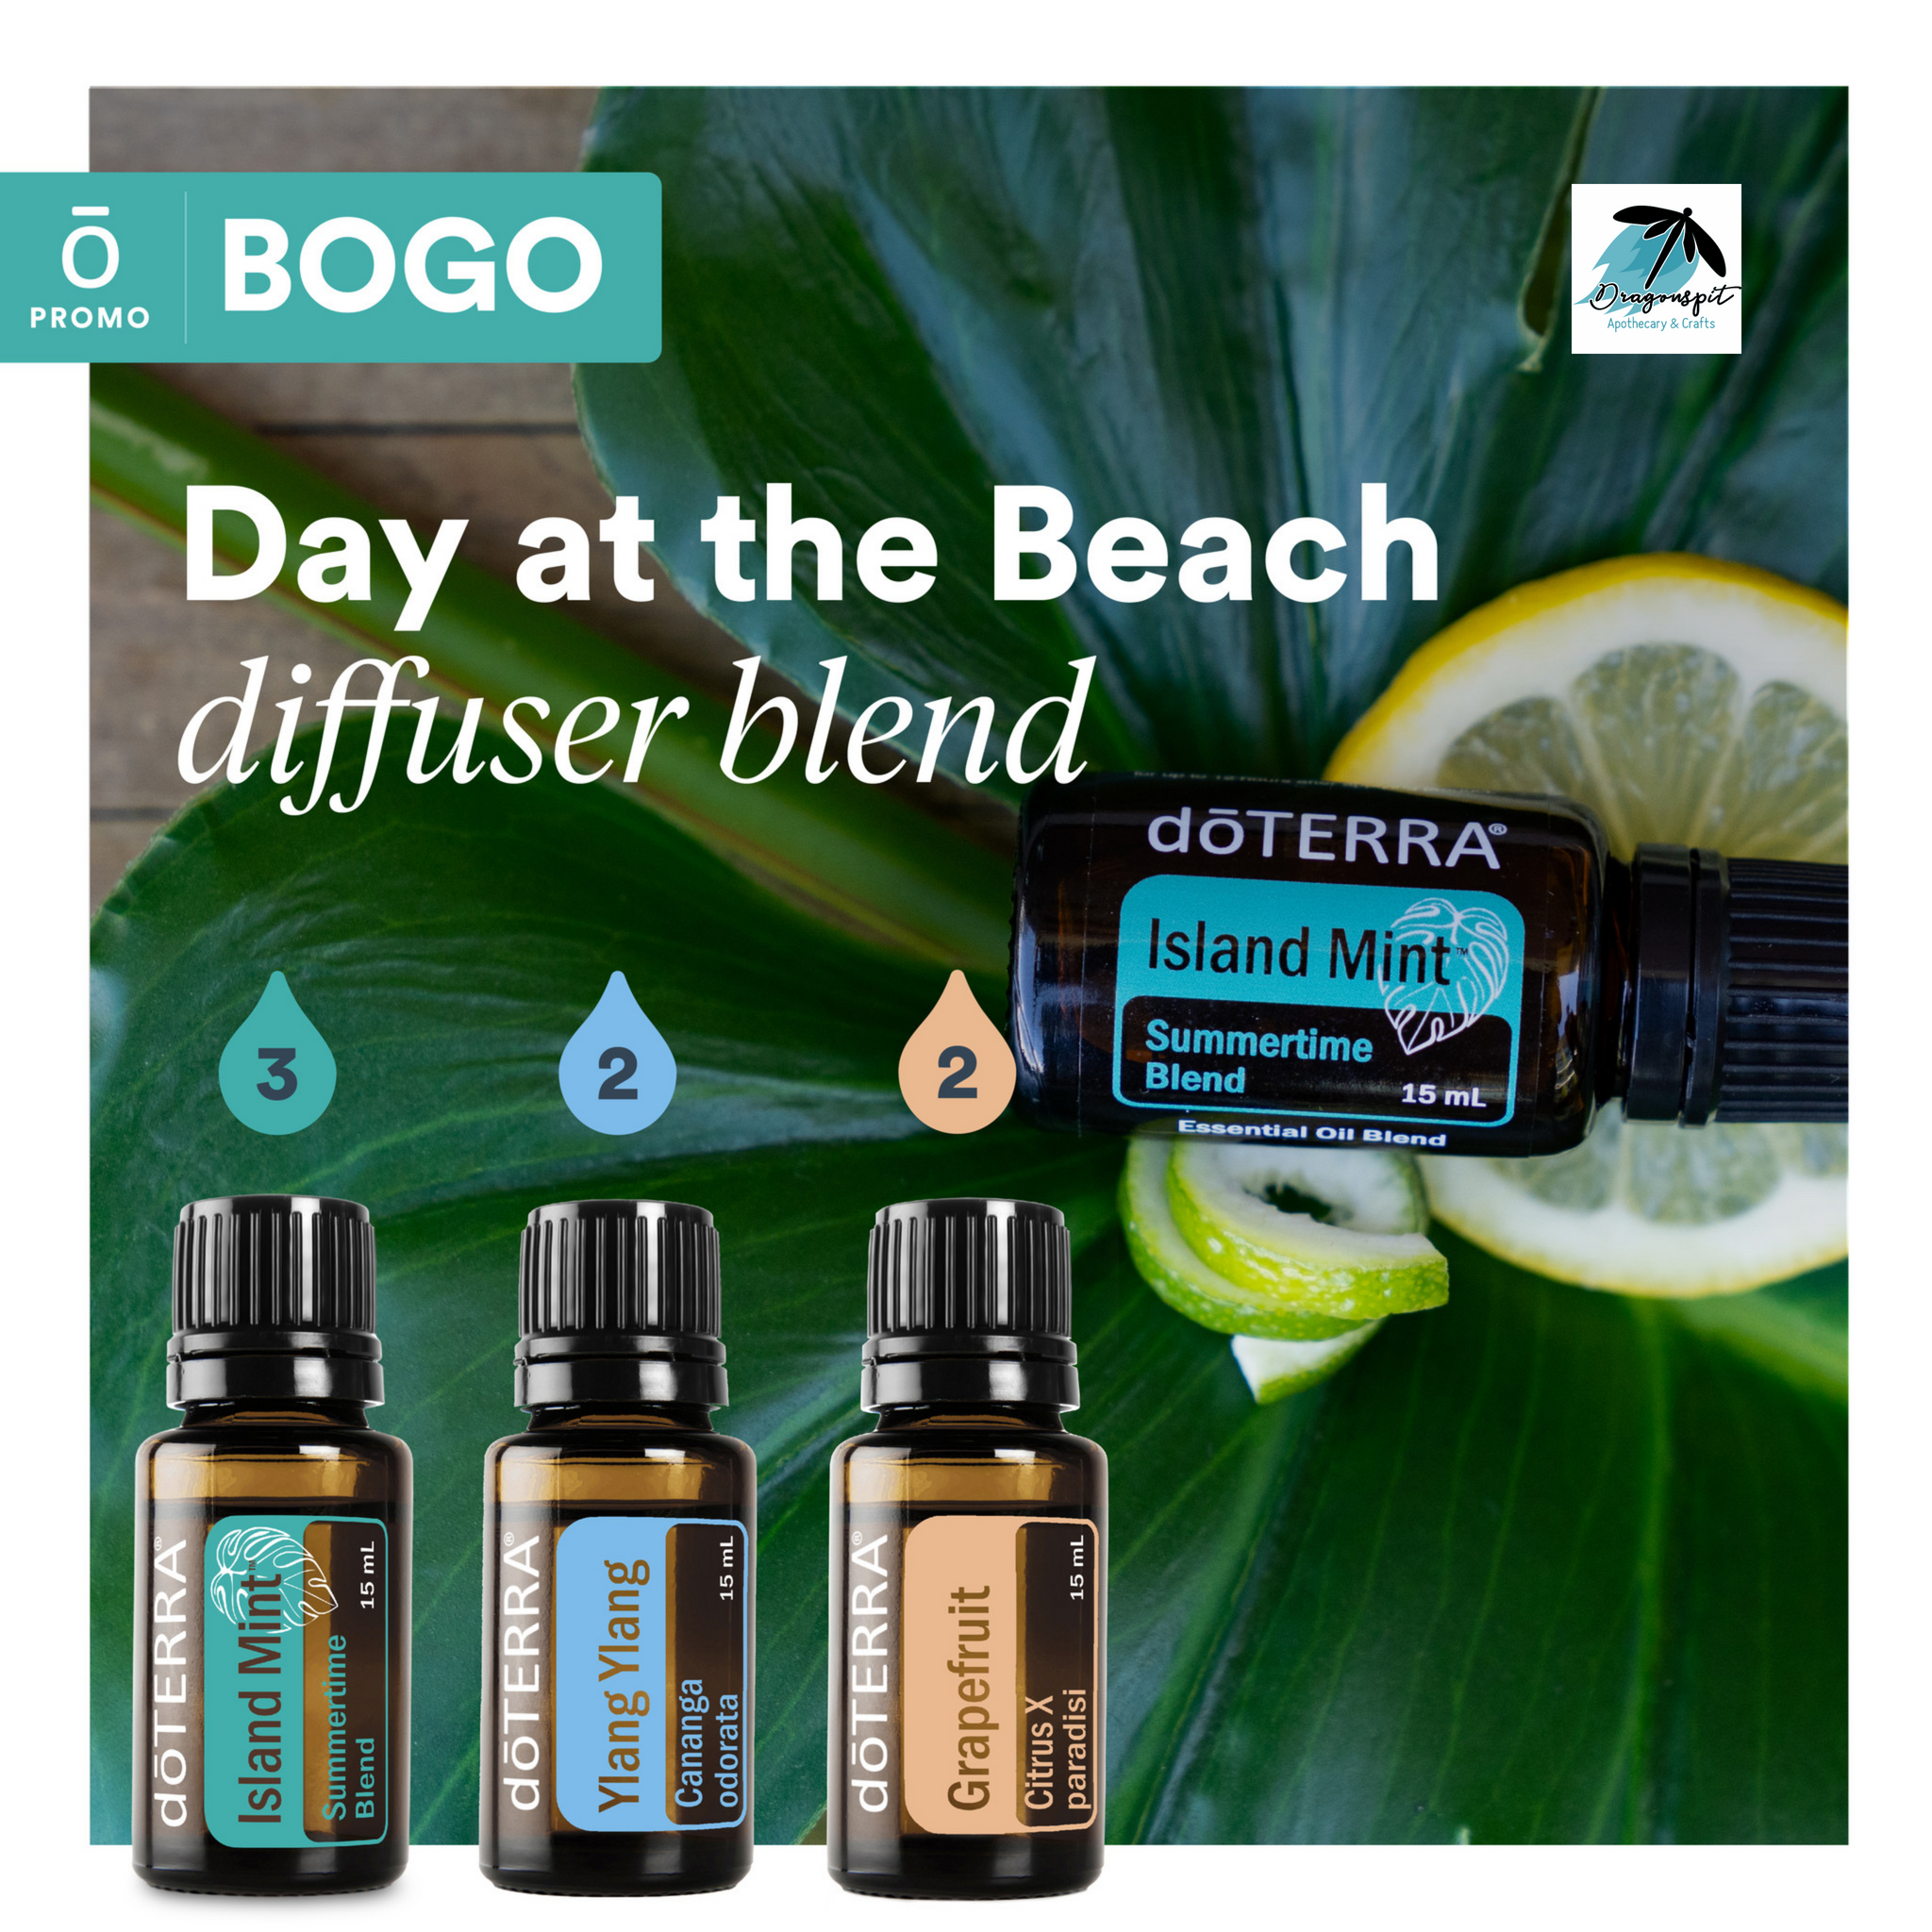 Beach day Diffuser blend with BOGO.png